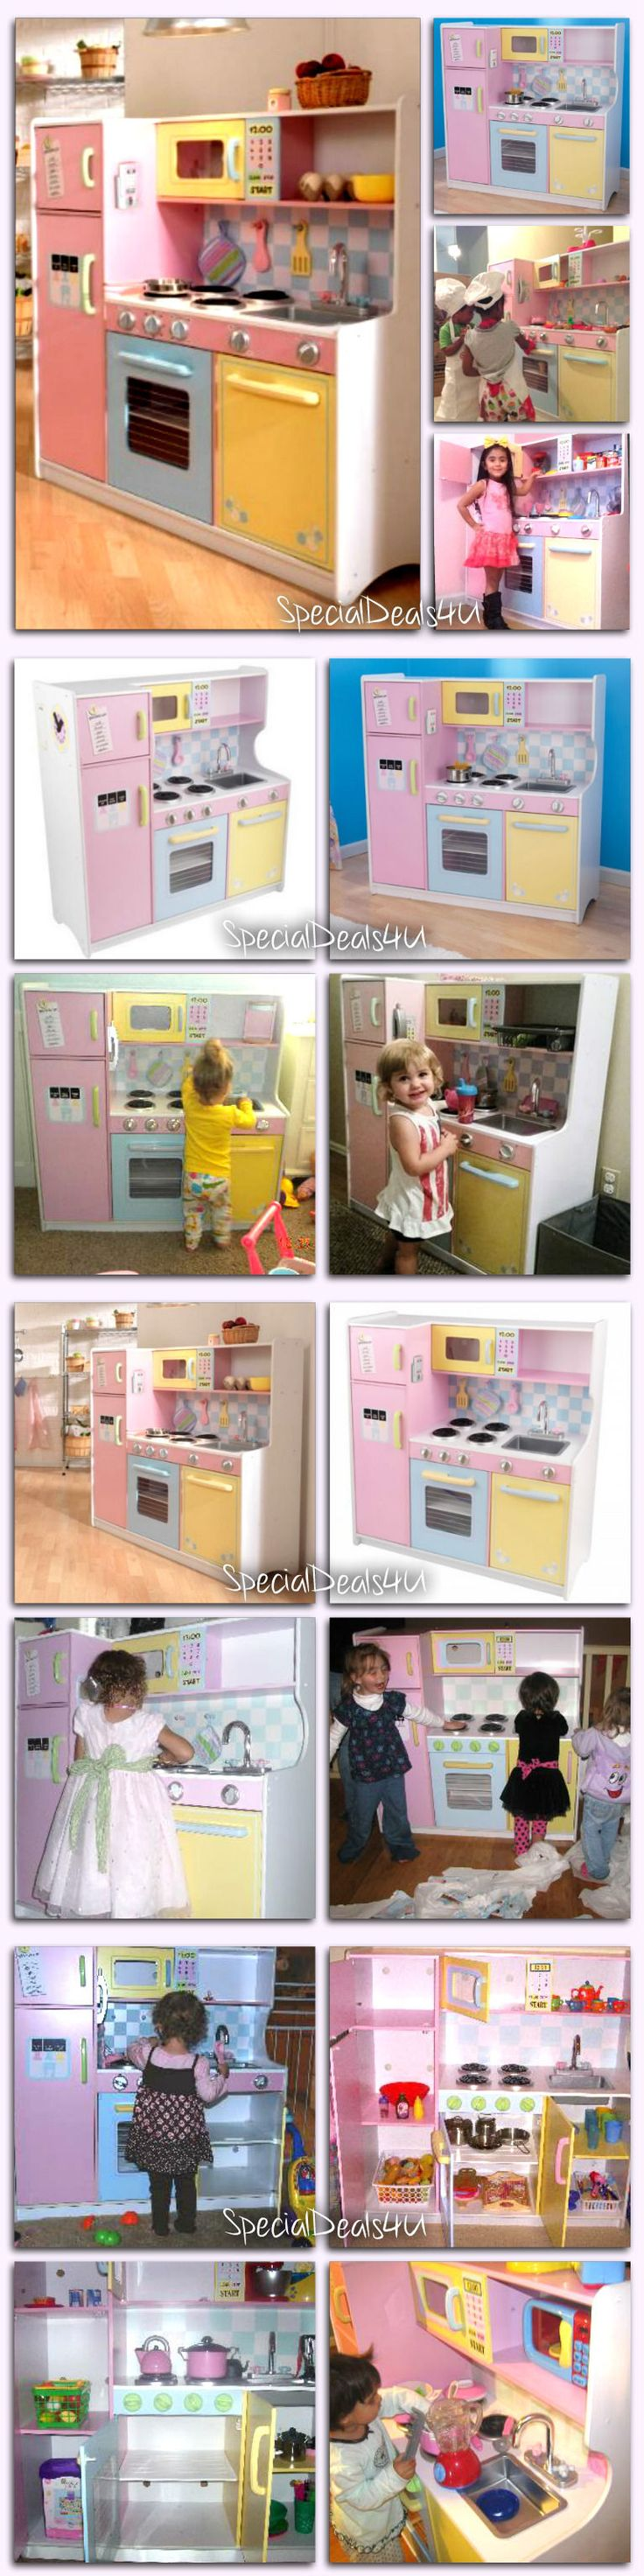 Kitchens 158746: Kids Pretend Play Kitchen Playset Cooking Imagination Food Wood Toy Children New -> BUY IT NOW ONLY: $179.95 on eBay!